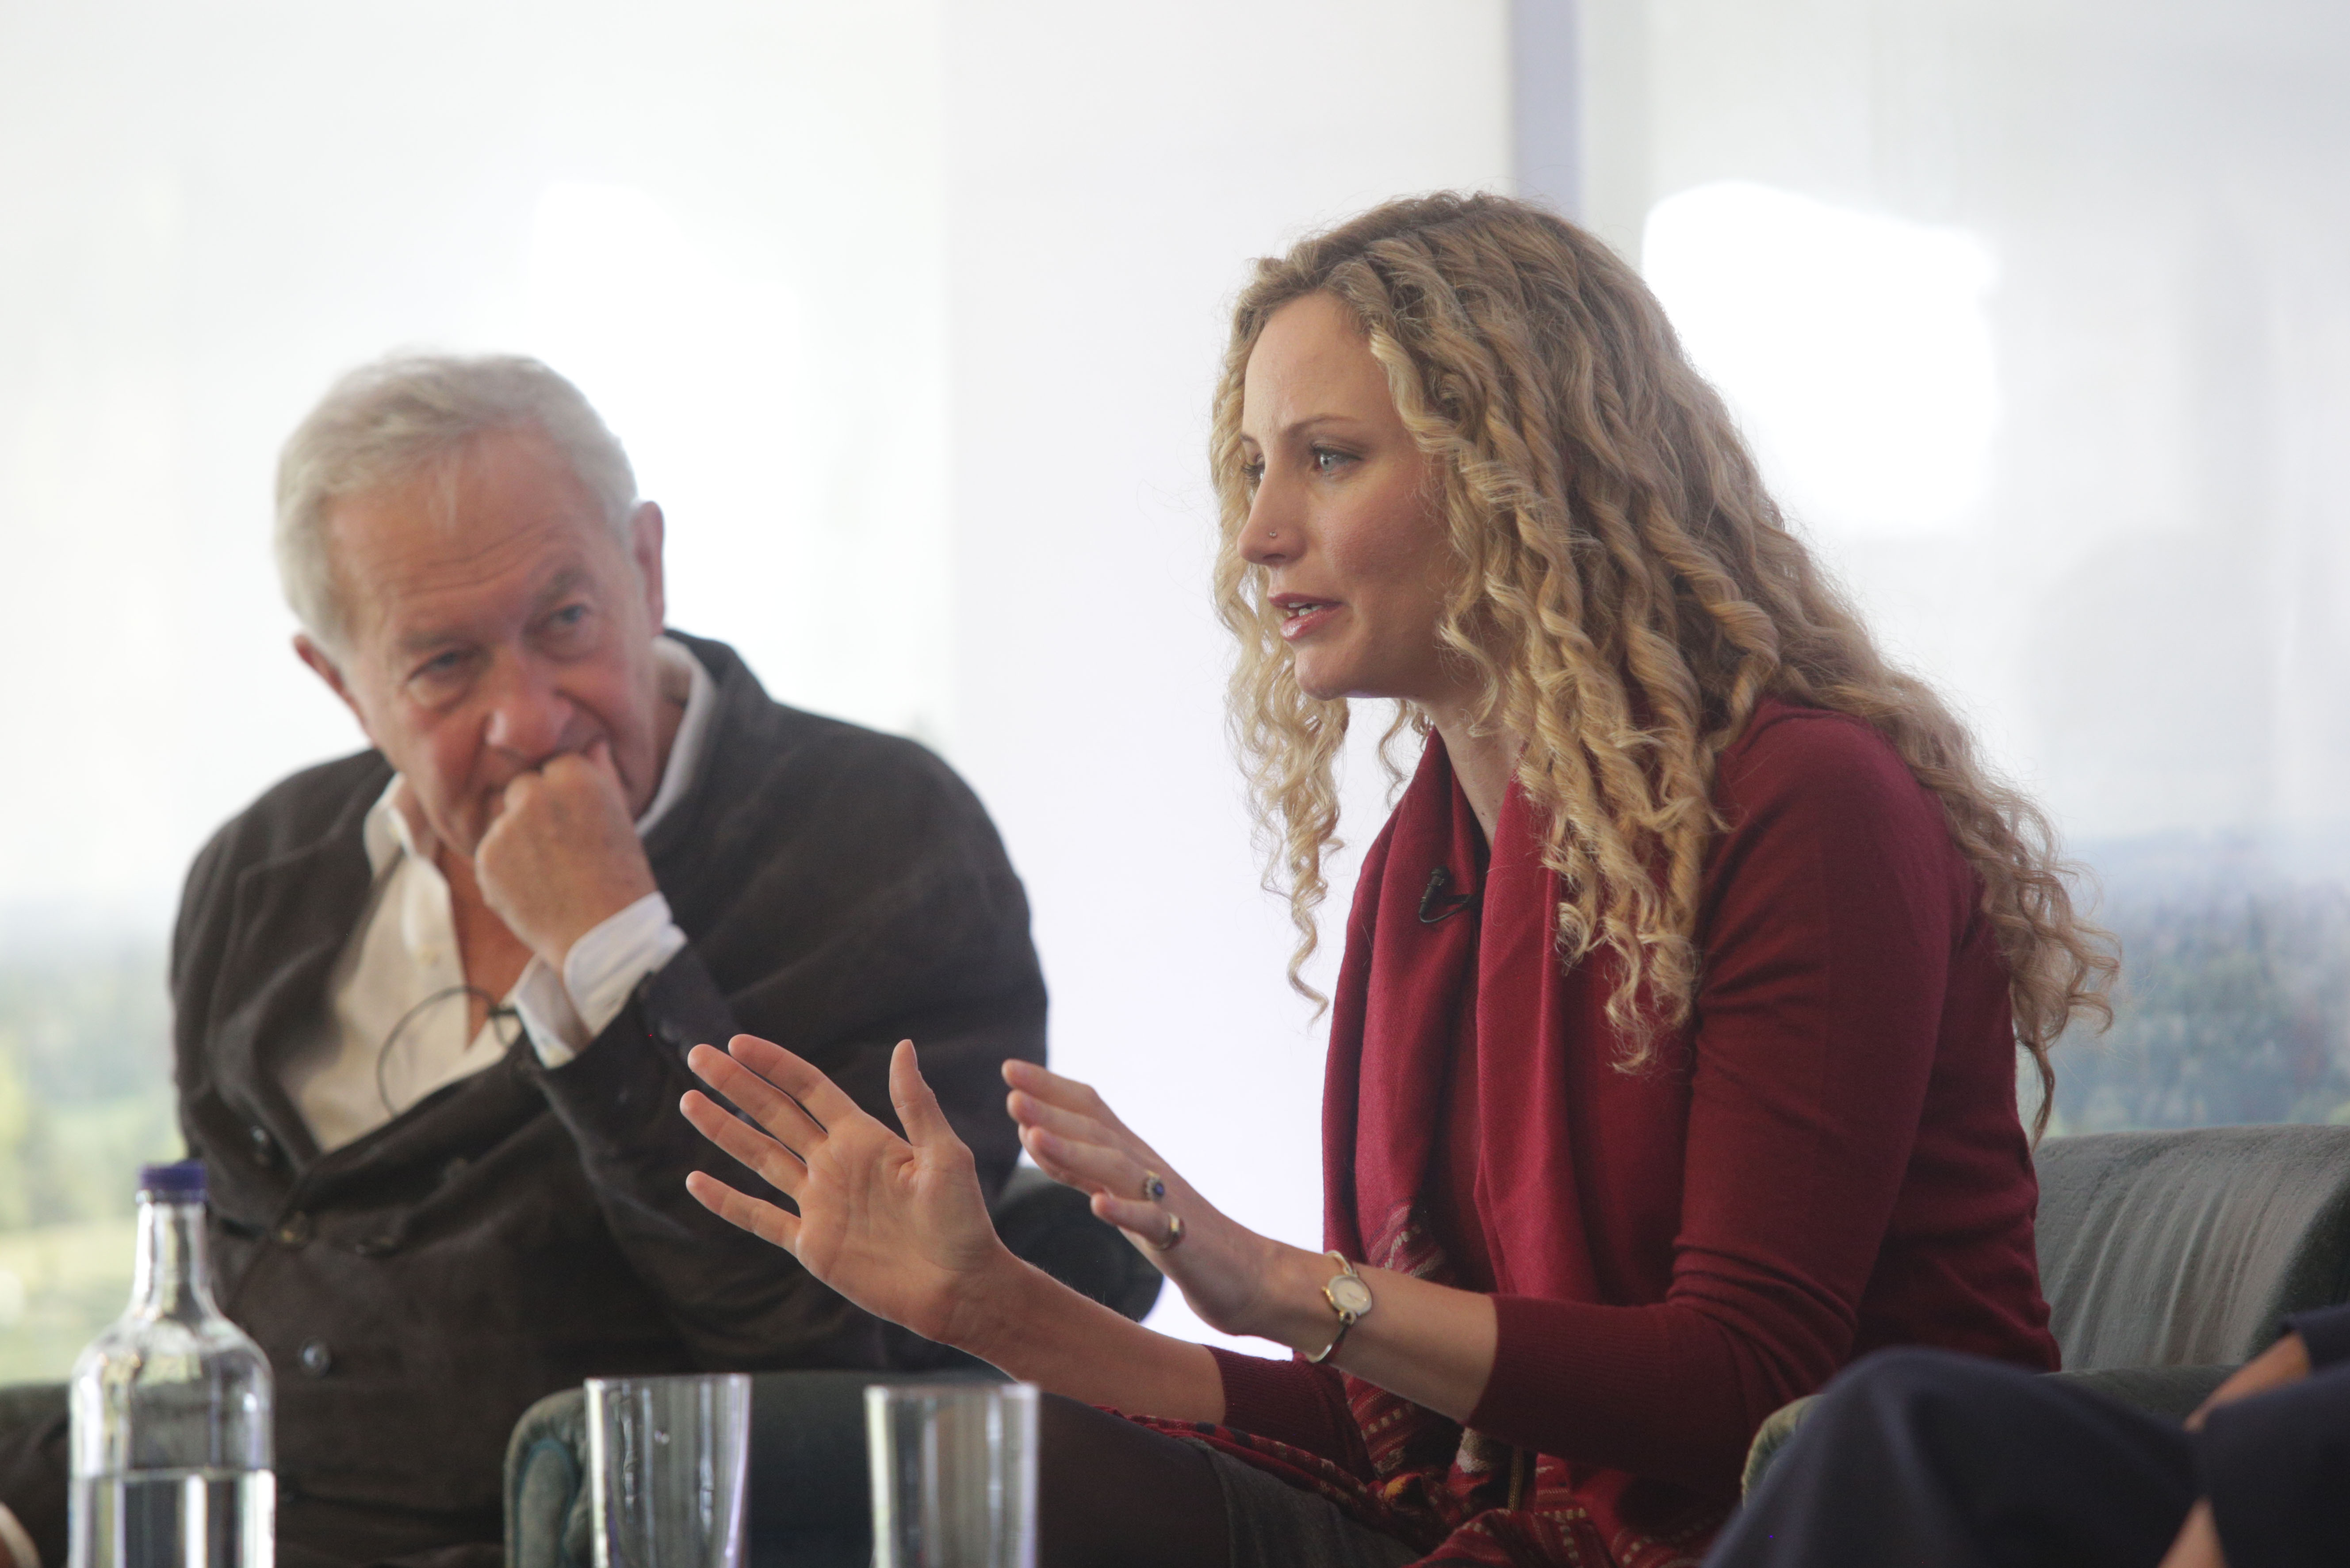 Sir Simon Schama and Suzannah Lipscomb on The Arts Club Stage at Cliveden Literary Festival